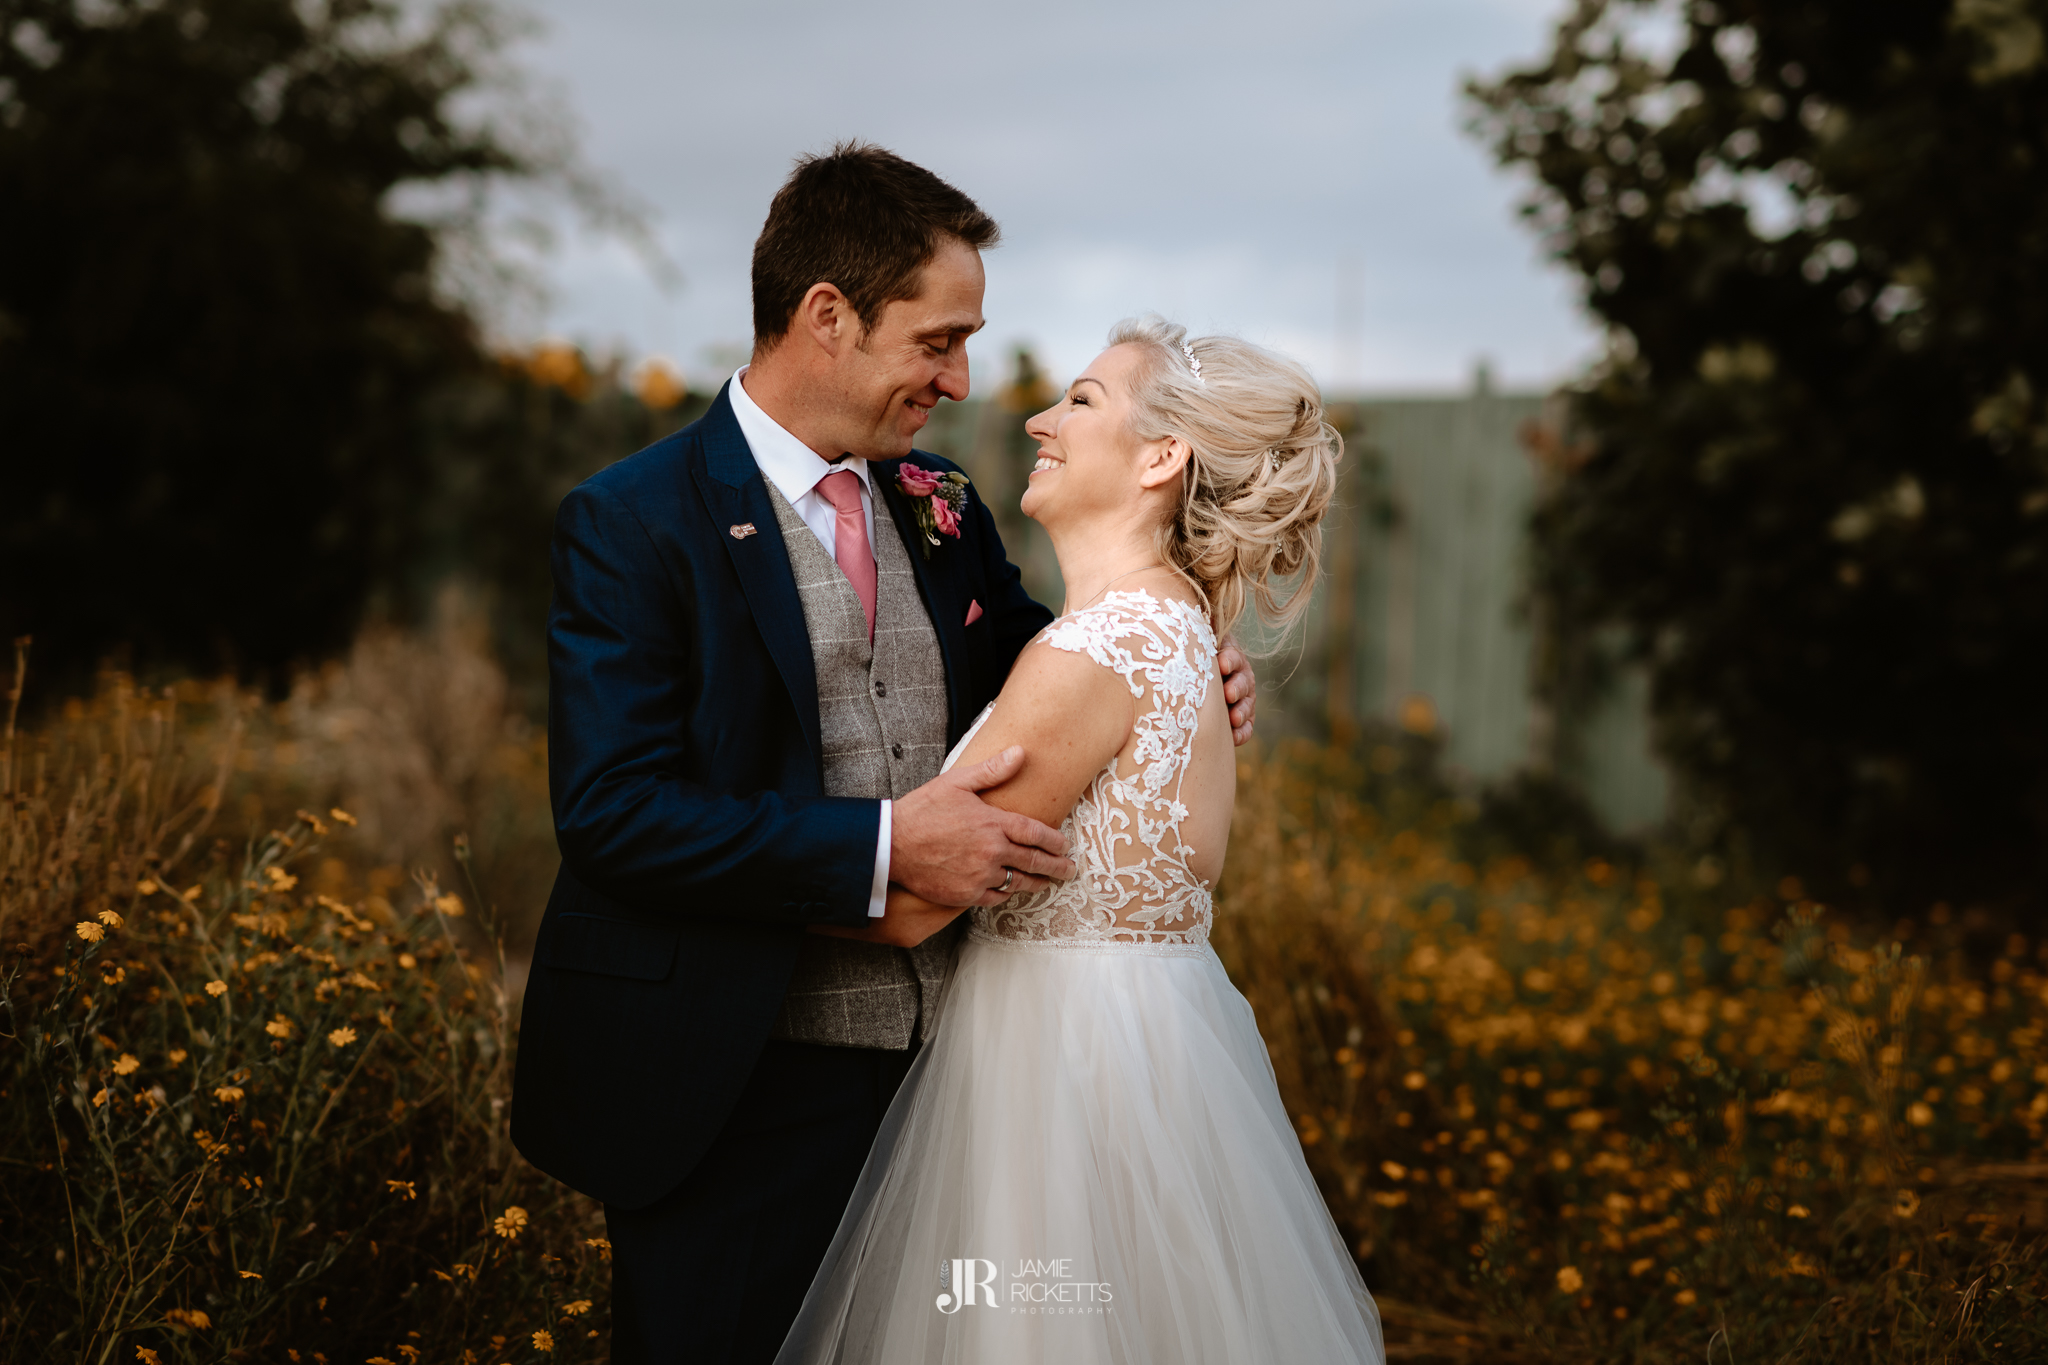 Wroxeter-Hotel-Wedding-Photography-In-Shropshire-By-Shropshire-Wedding-Photographer-Jamie-Ricketts-201.JPG